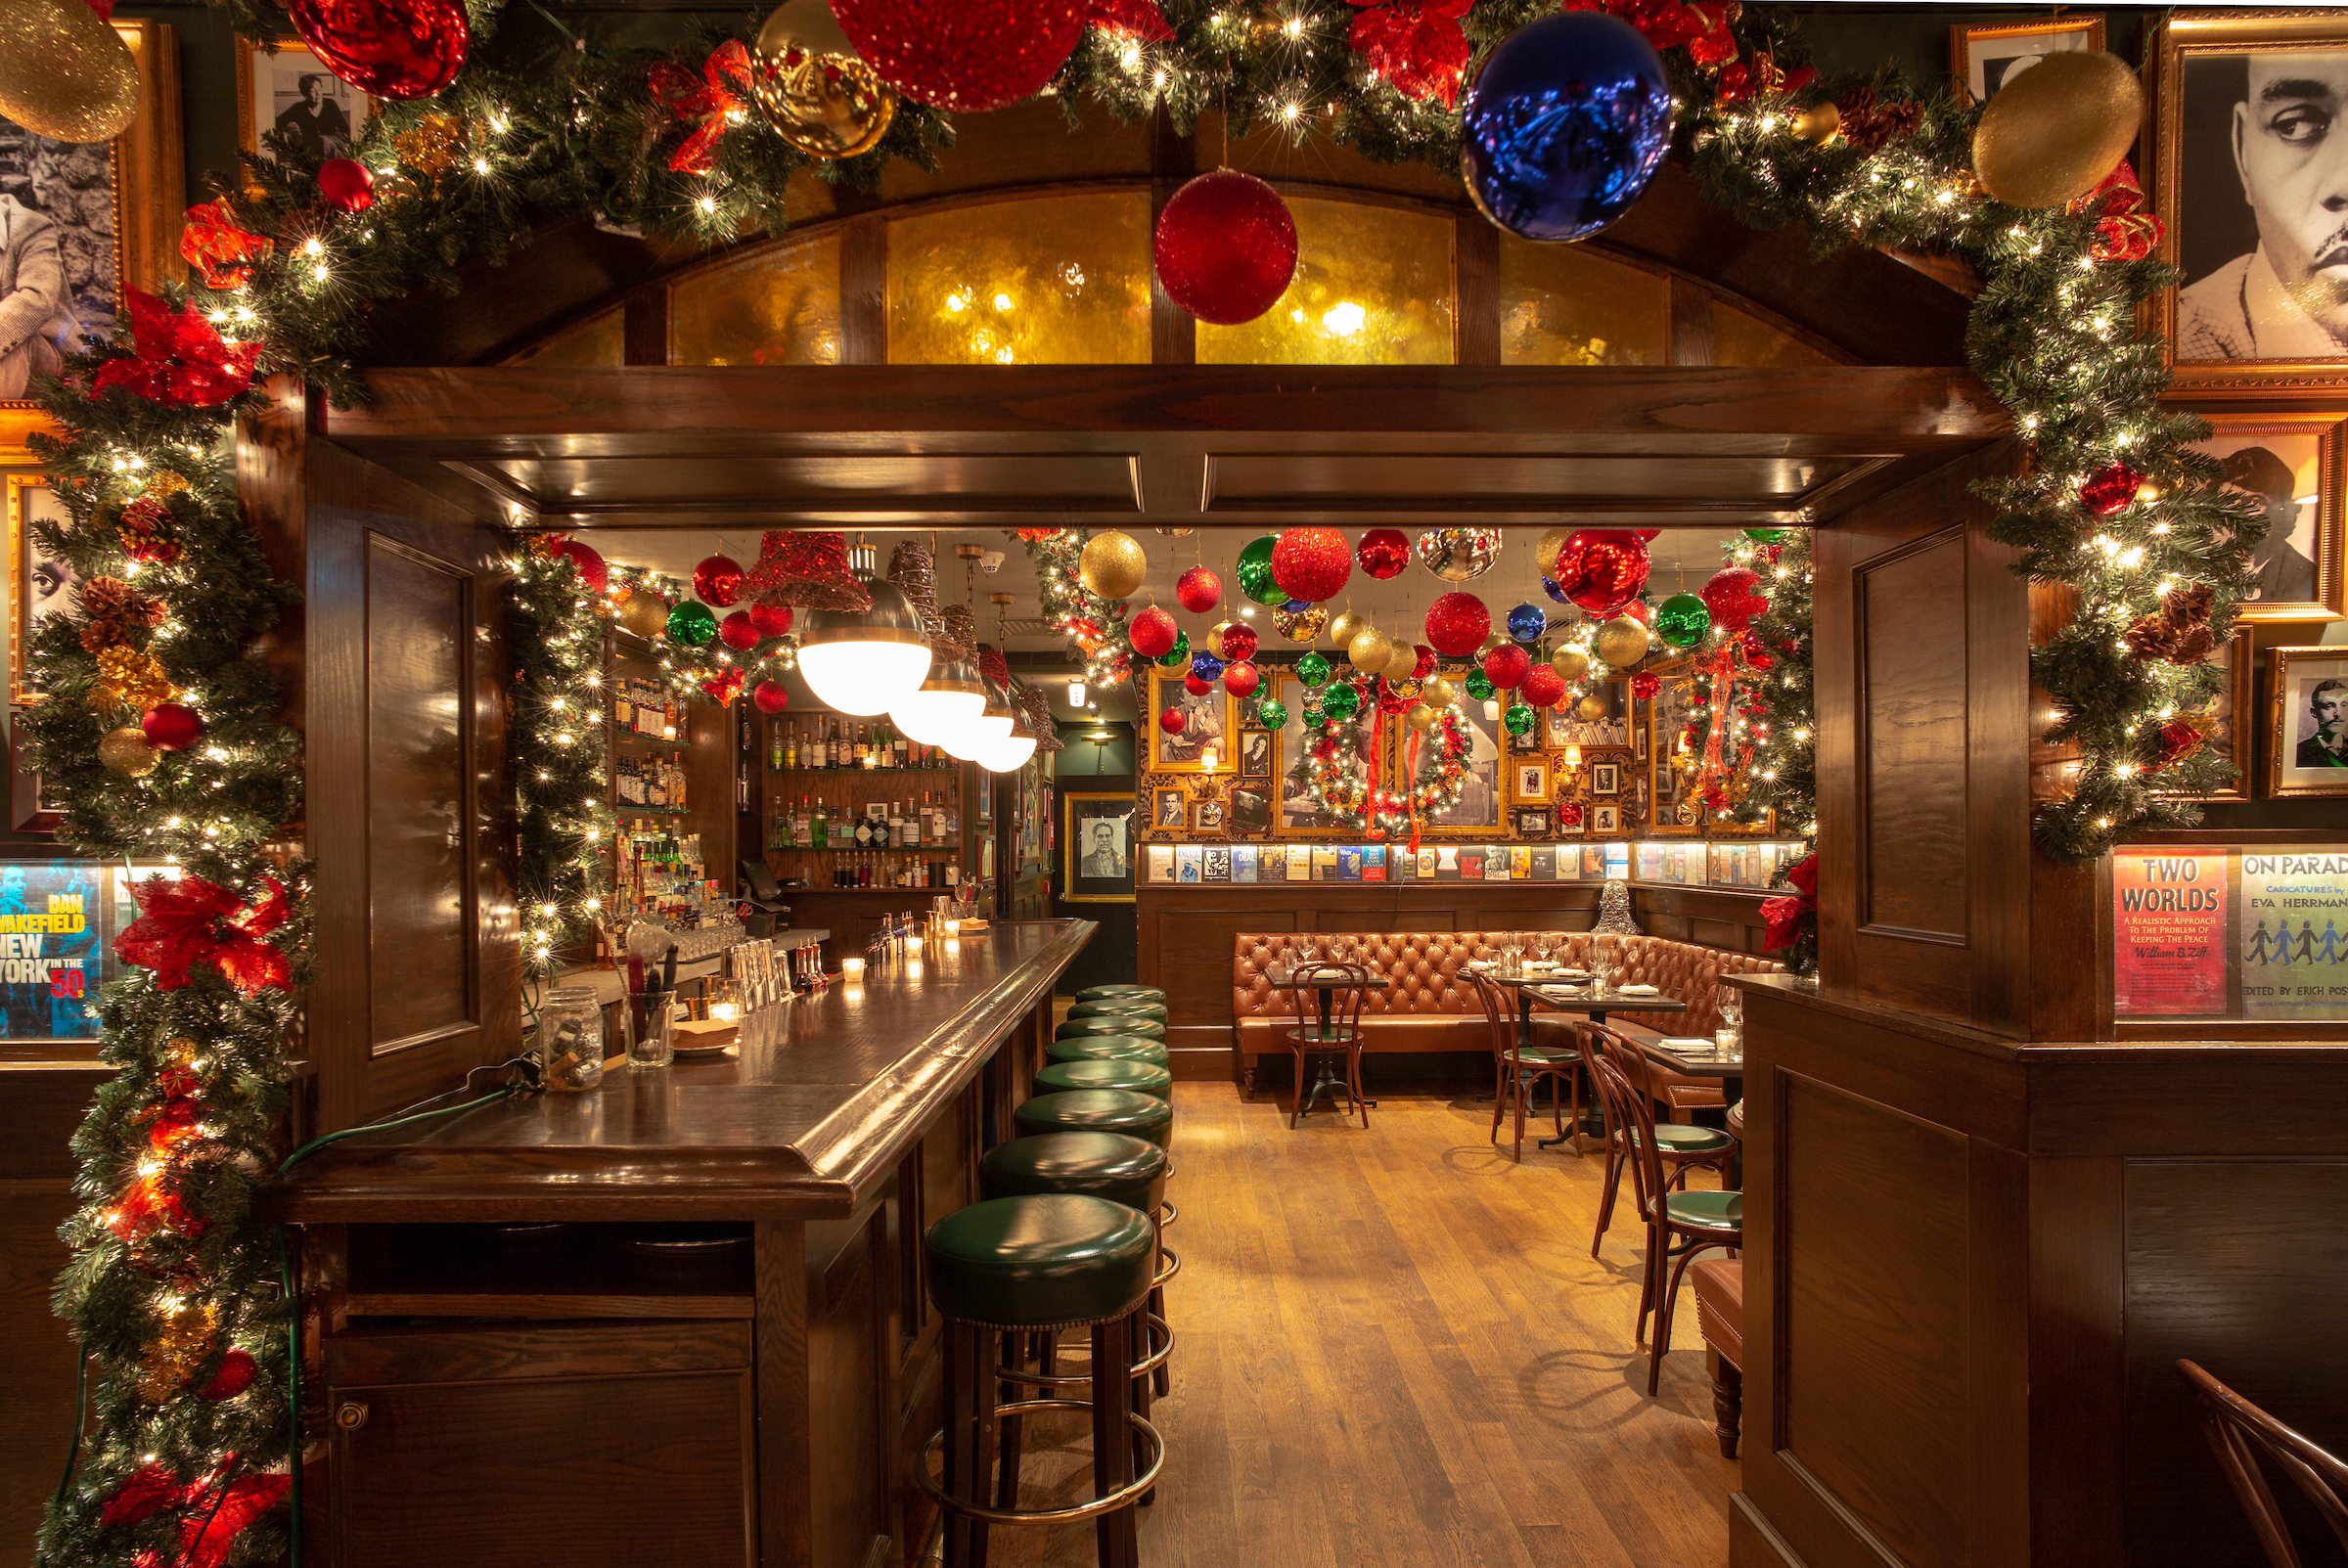 The Chumley's bar with Christmas decorations